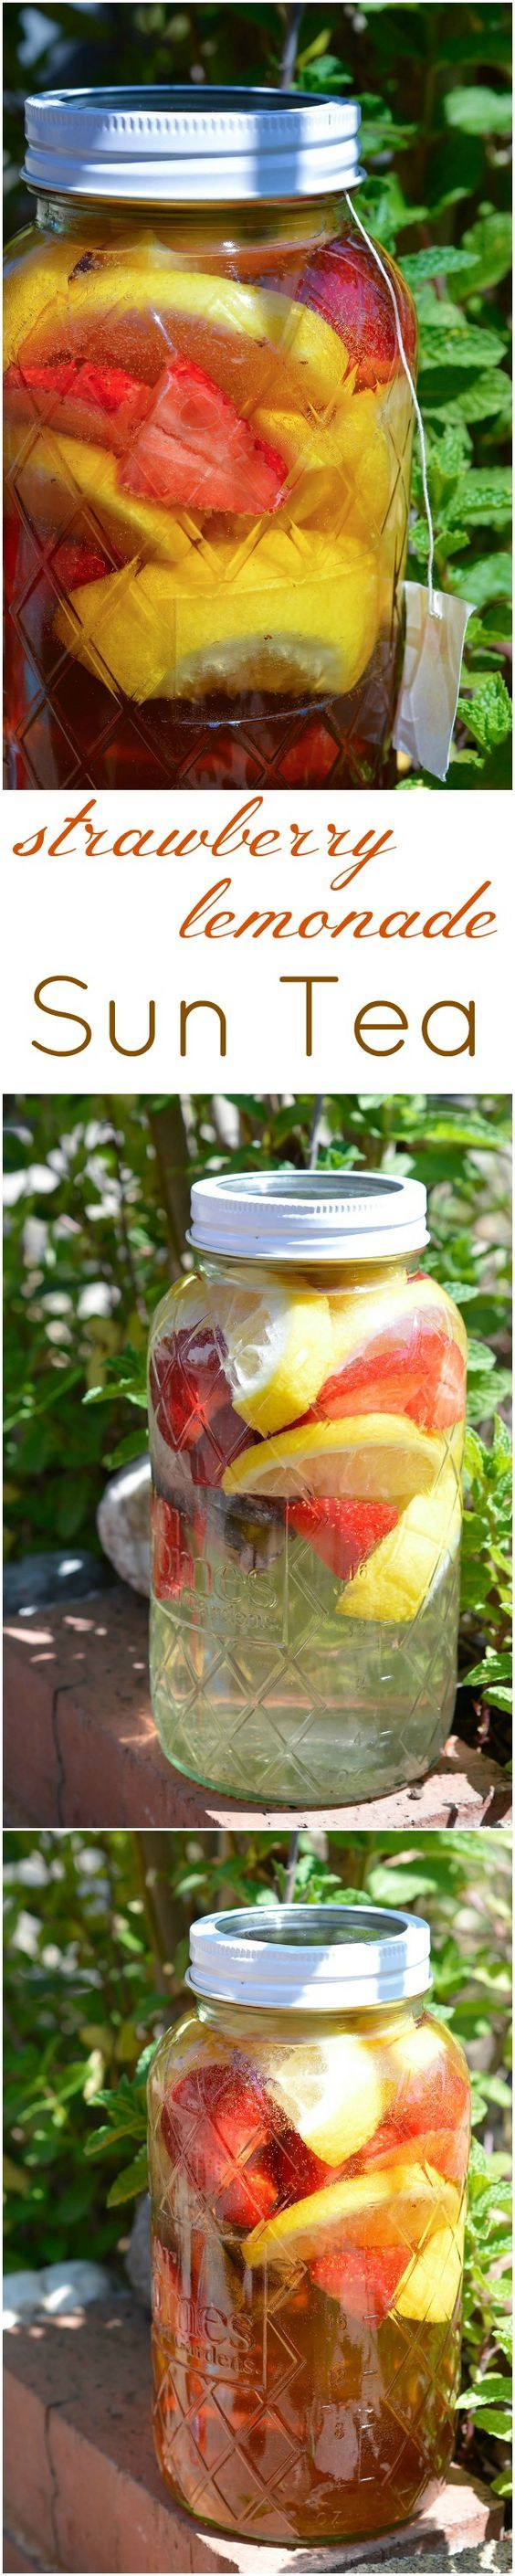 Strawberry Lemonade Sun Tea Recipe - This is the perfect summertime beverage. A naturally fruit flavored tea with no added sugar! Tastes like homemade Snapple!